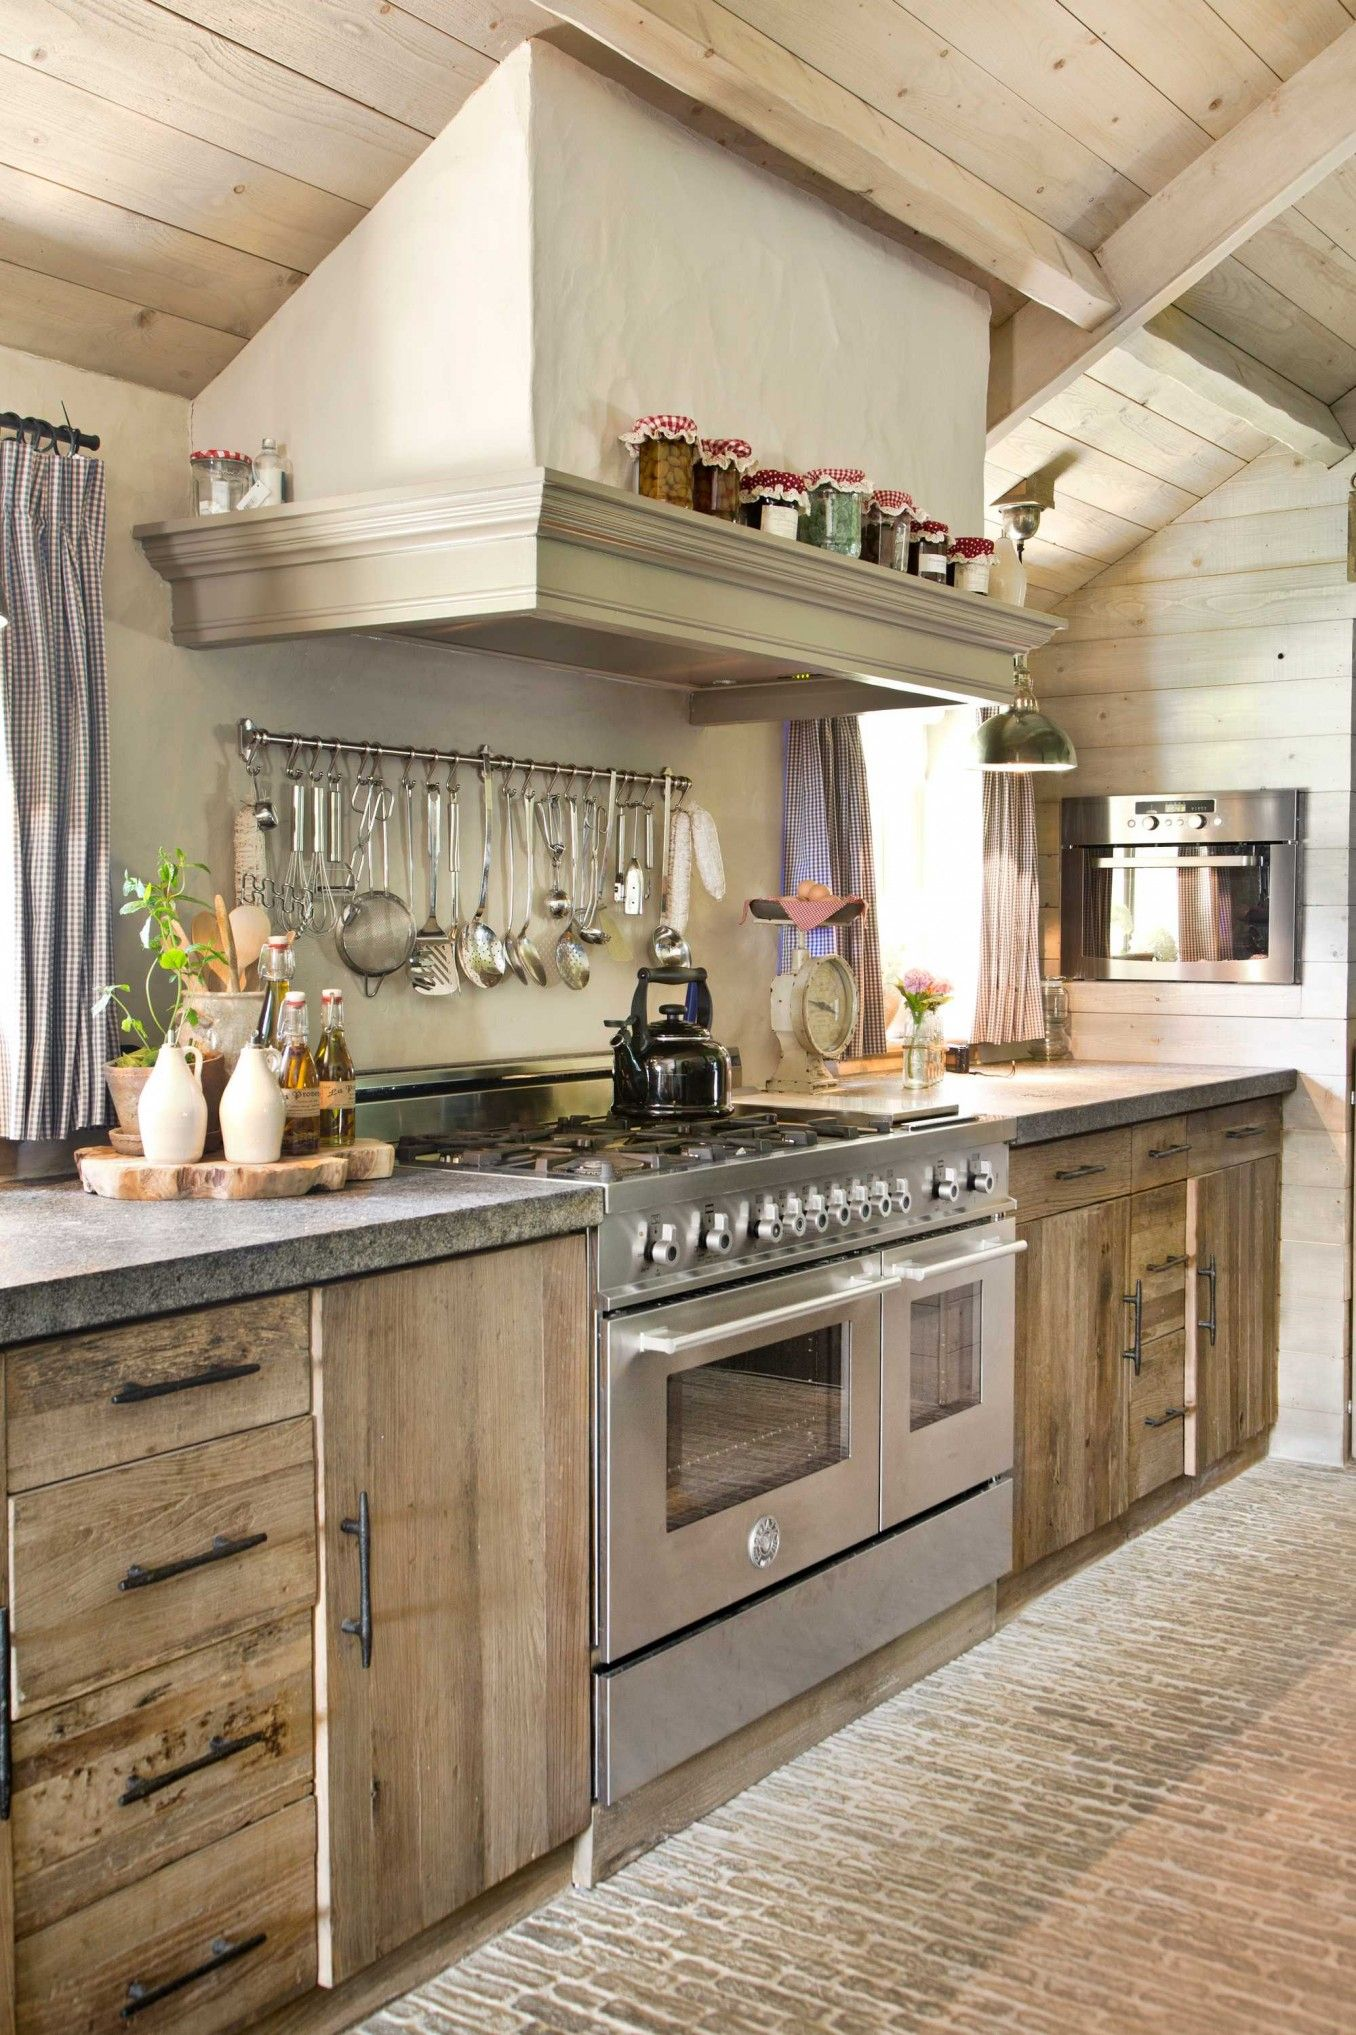 Natural Wood Kitchen With Stainless Steel Appliances And